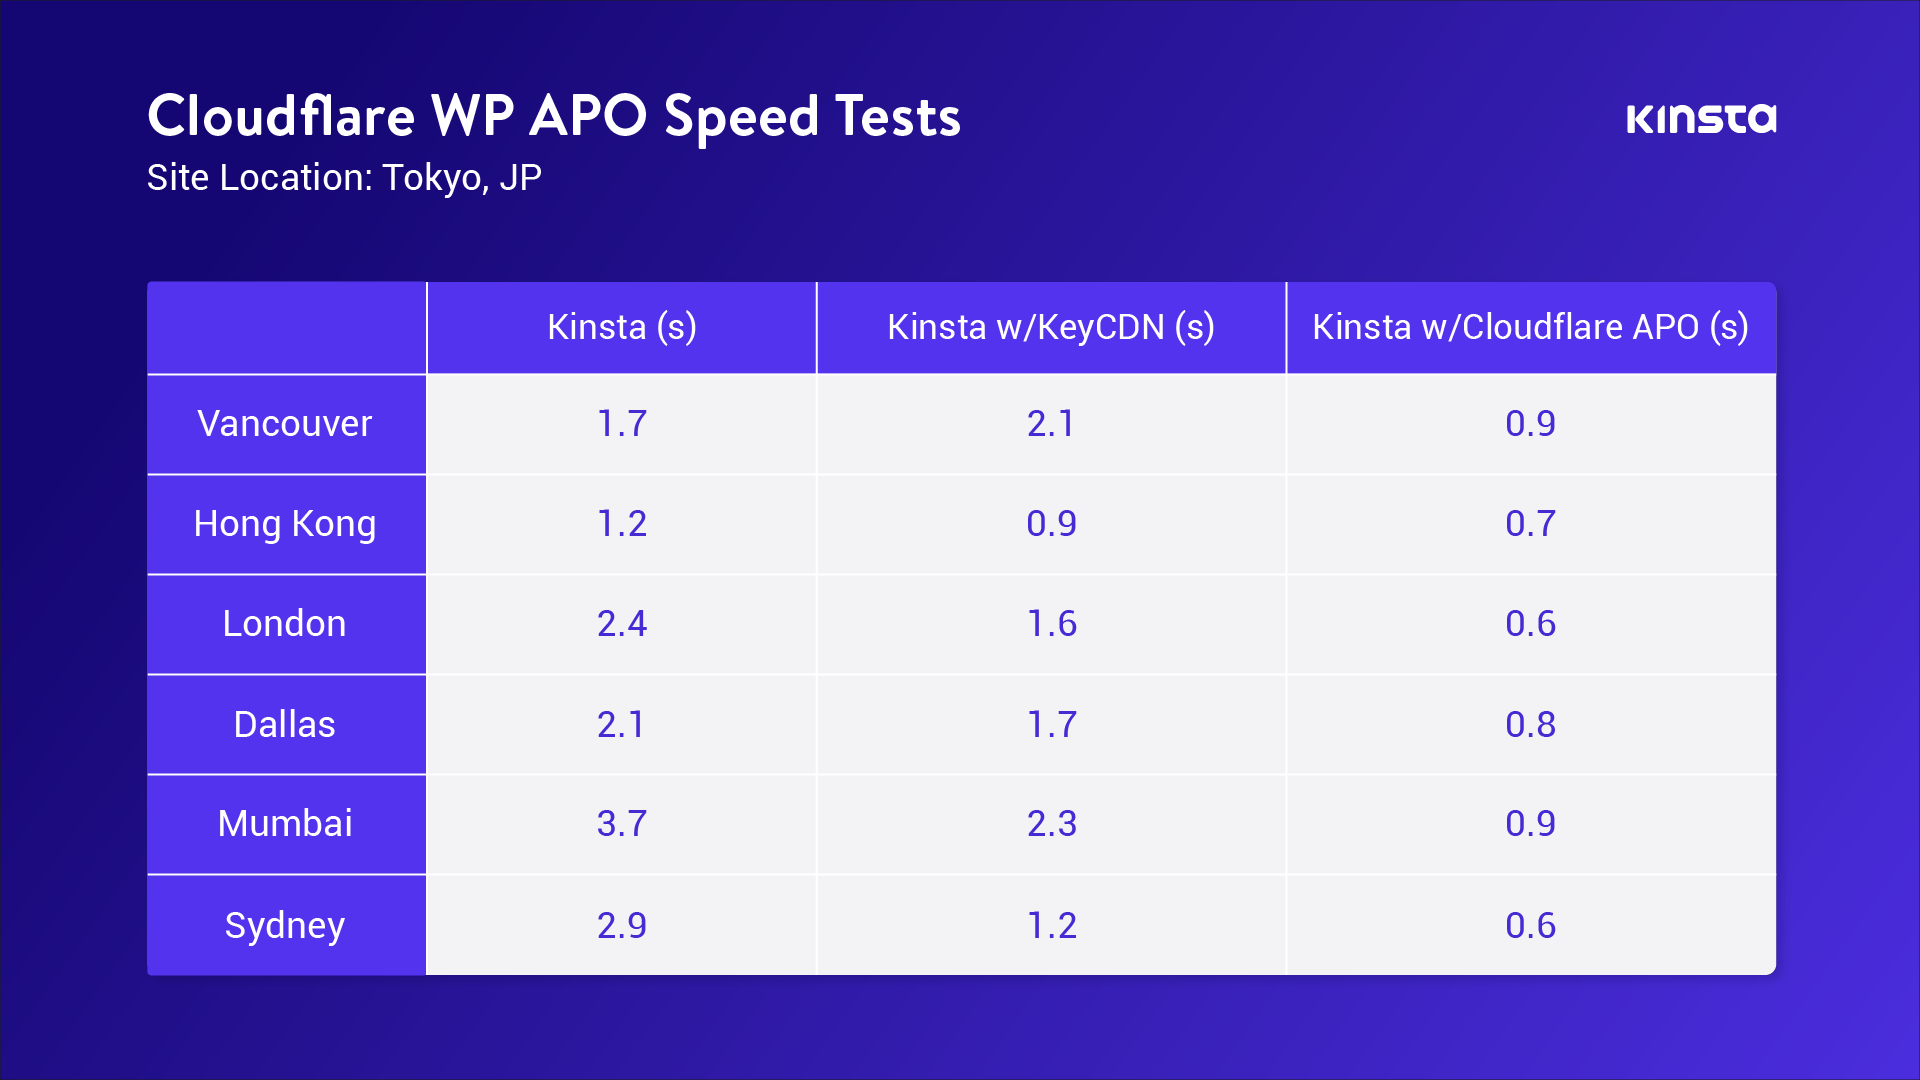 Door Cloudflare APO in te schakelen, werden in onze tests de WordPress prestaties tot 300% verhoogd.